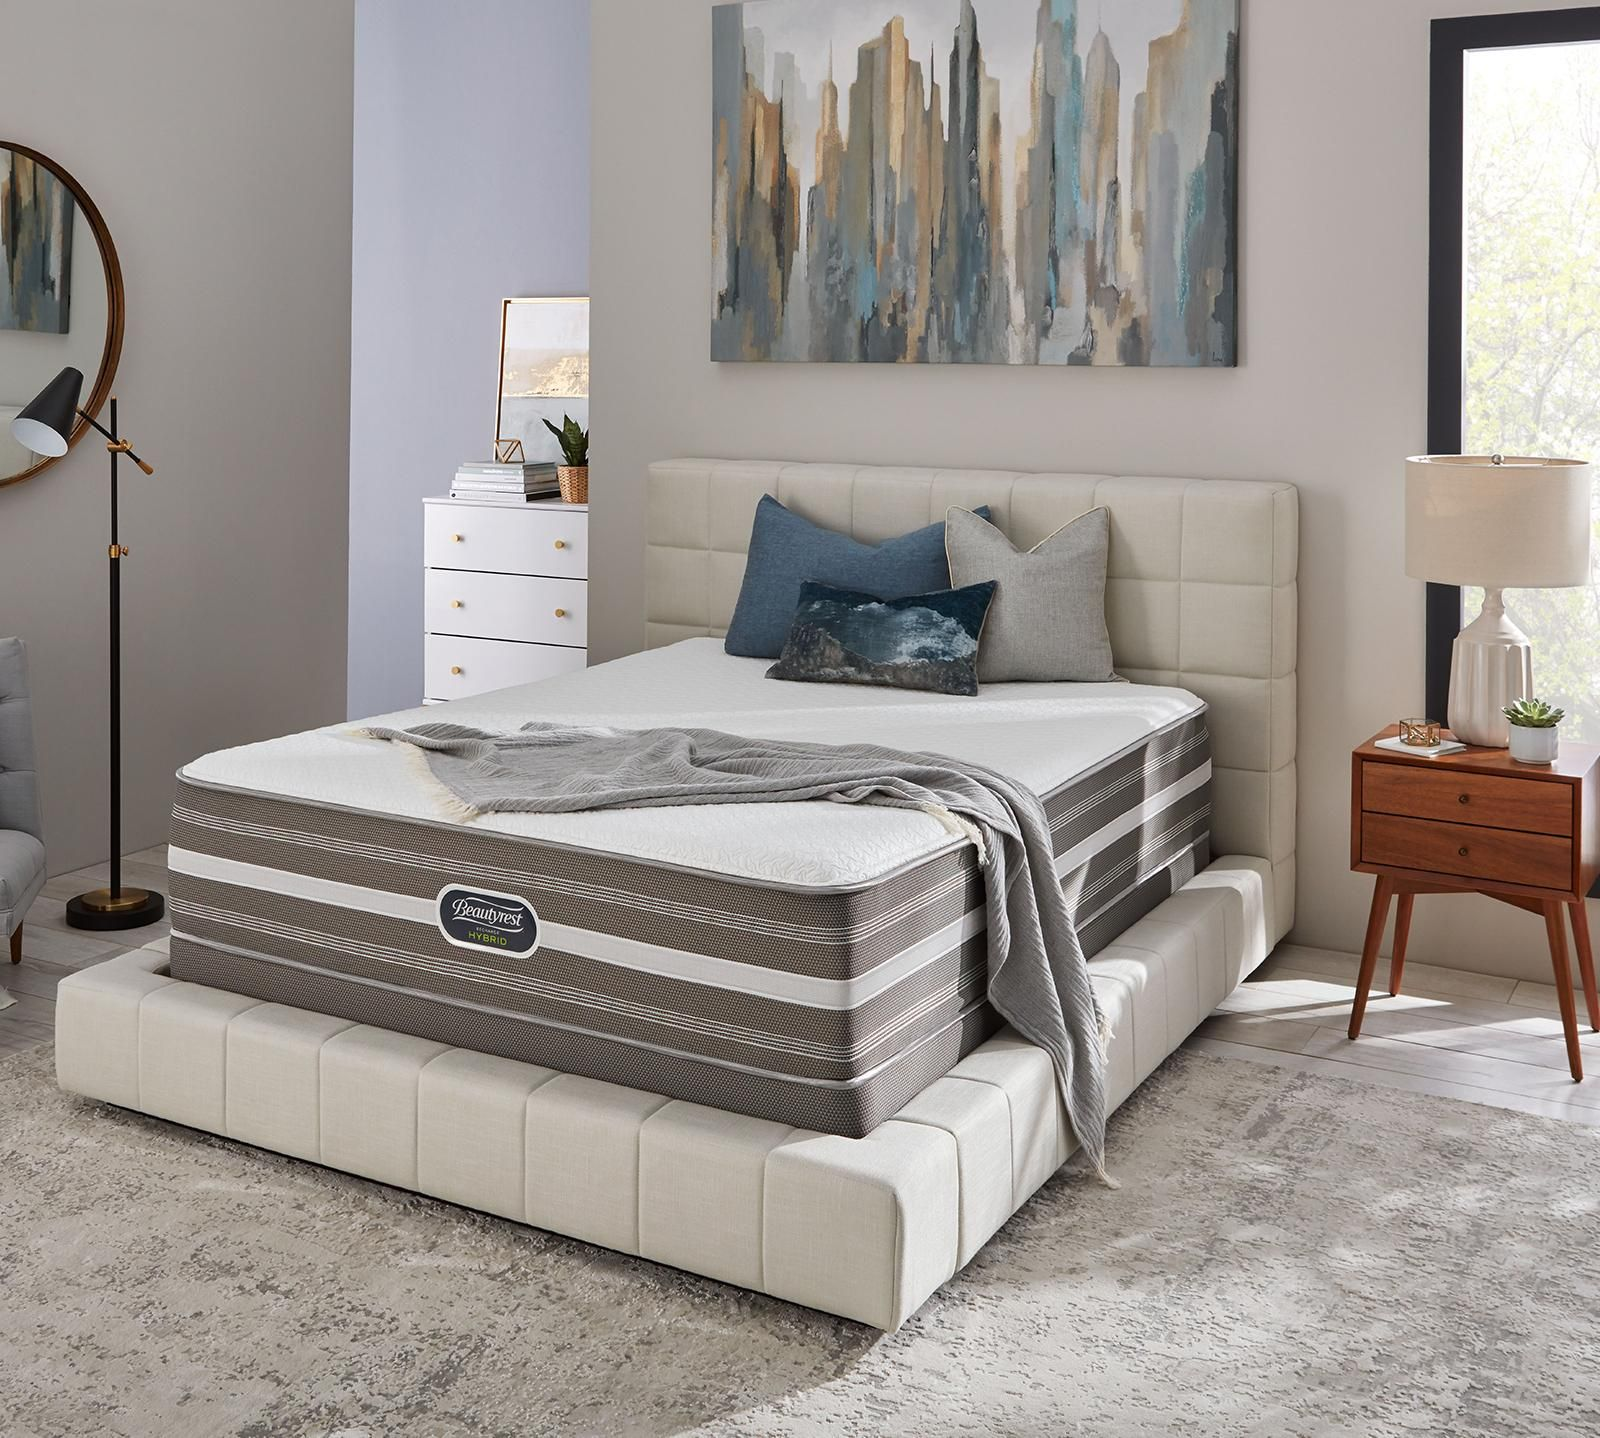 Shop for your Simmons Beautyrest Recharge Greenmont 13.5